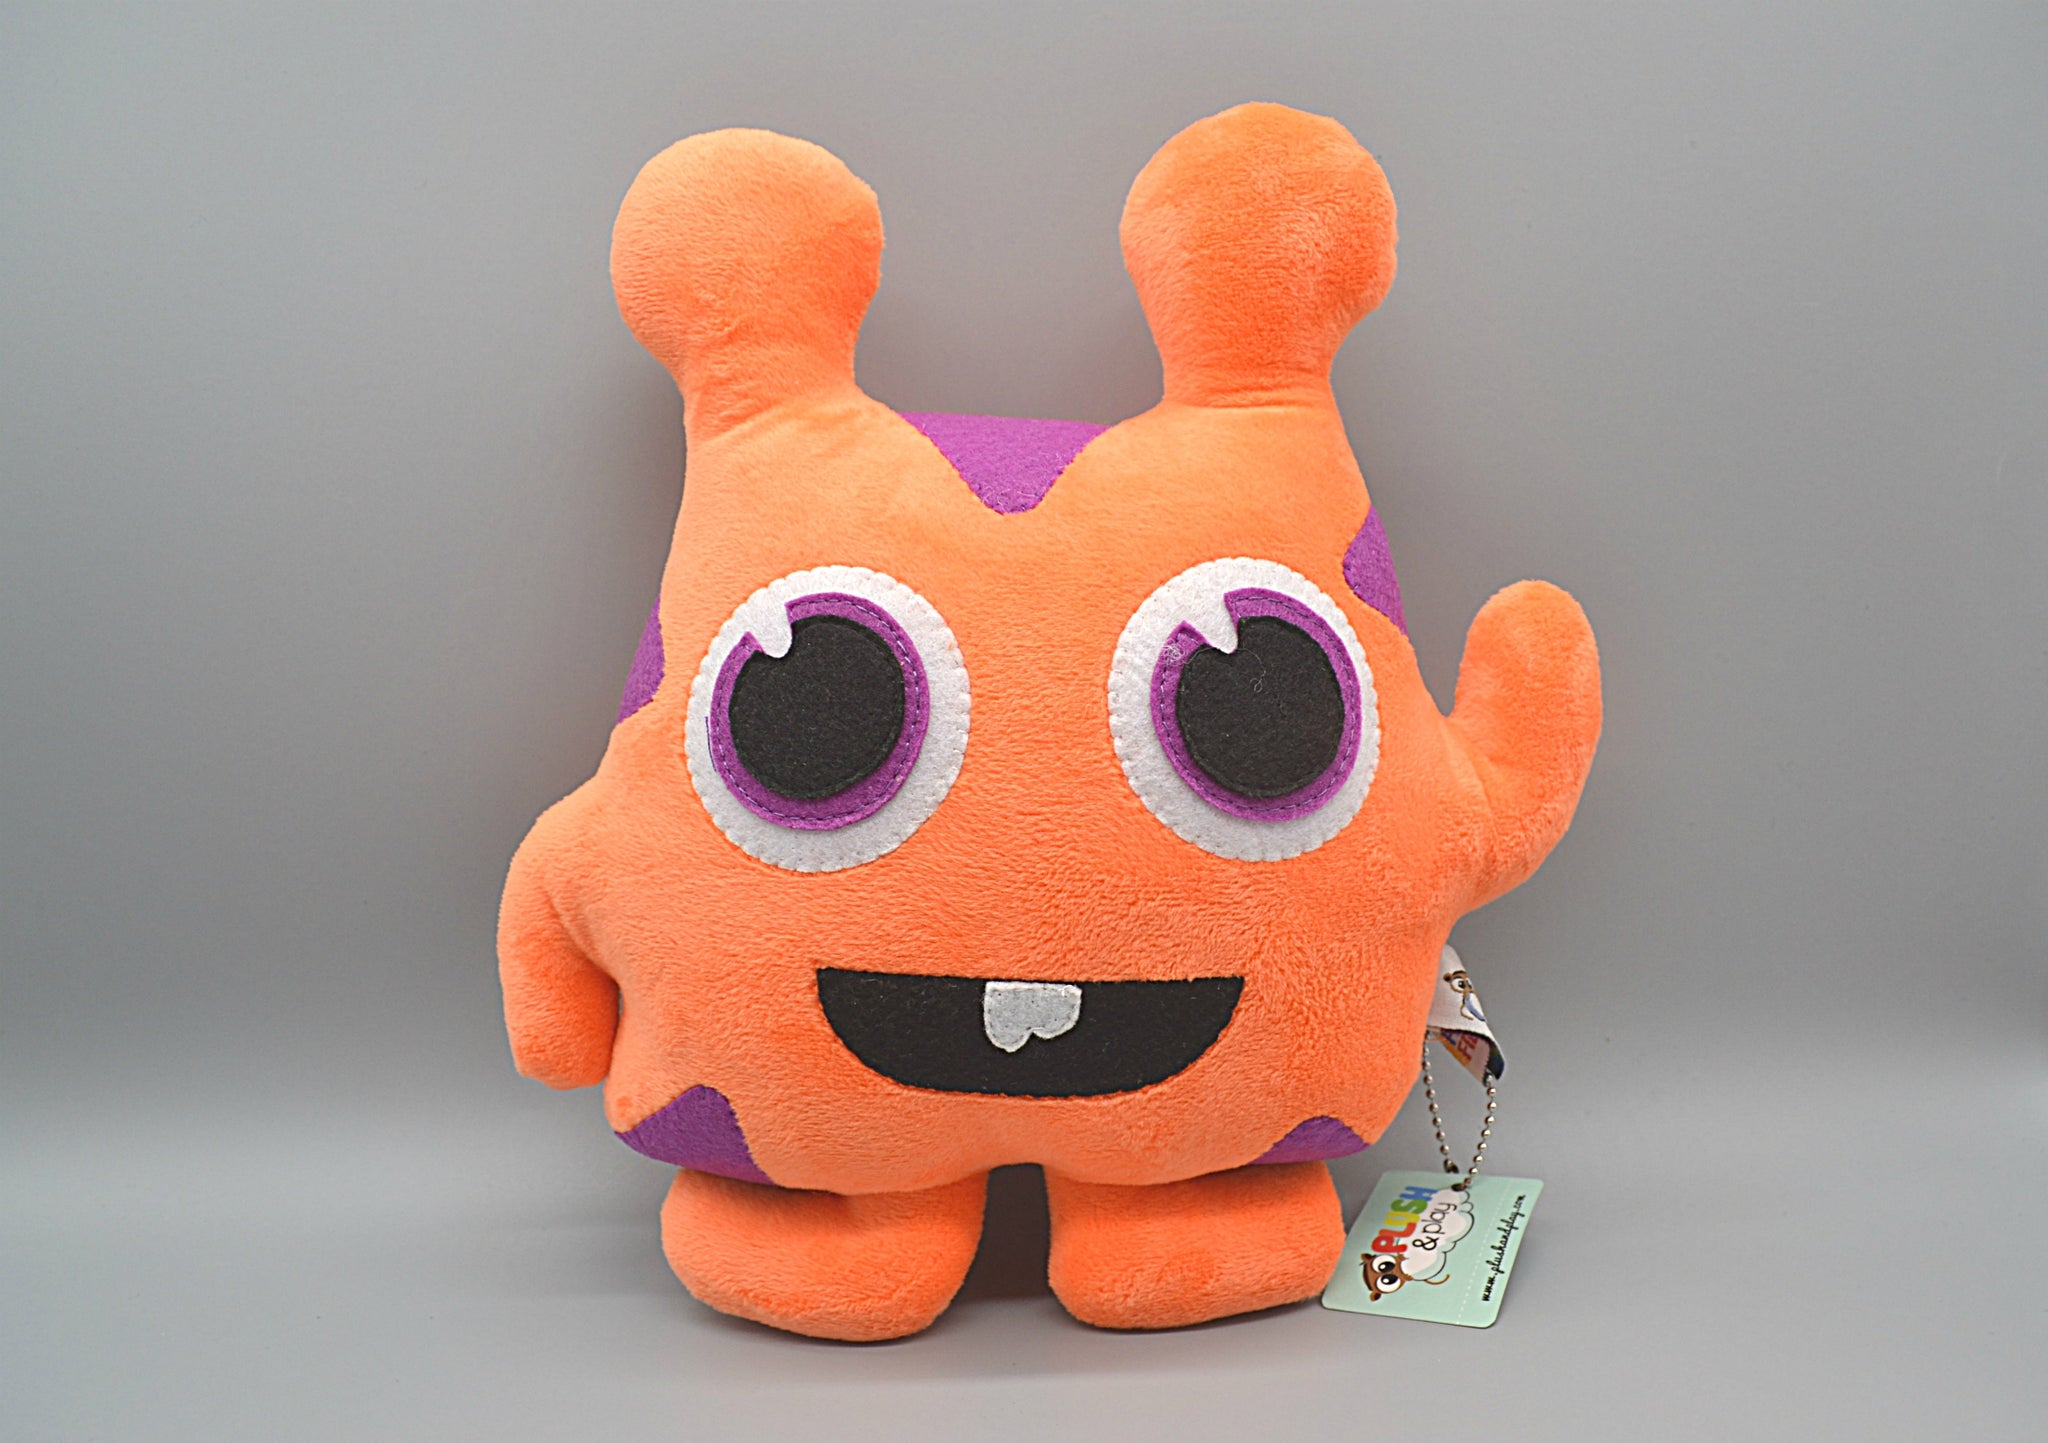 Little Monster Plush Toy: Kaka